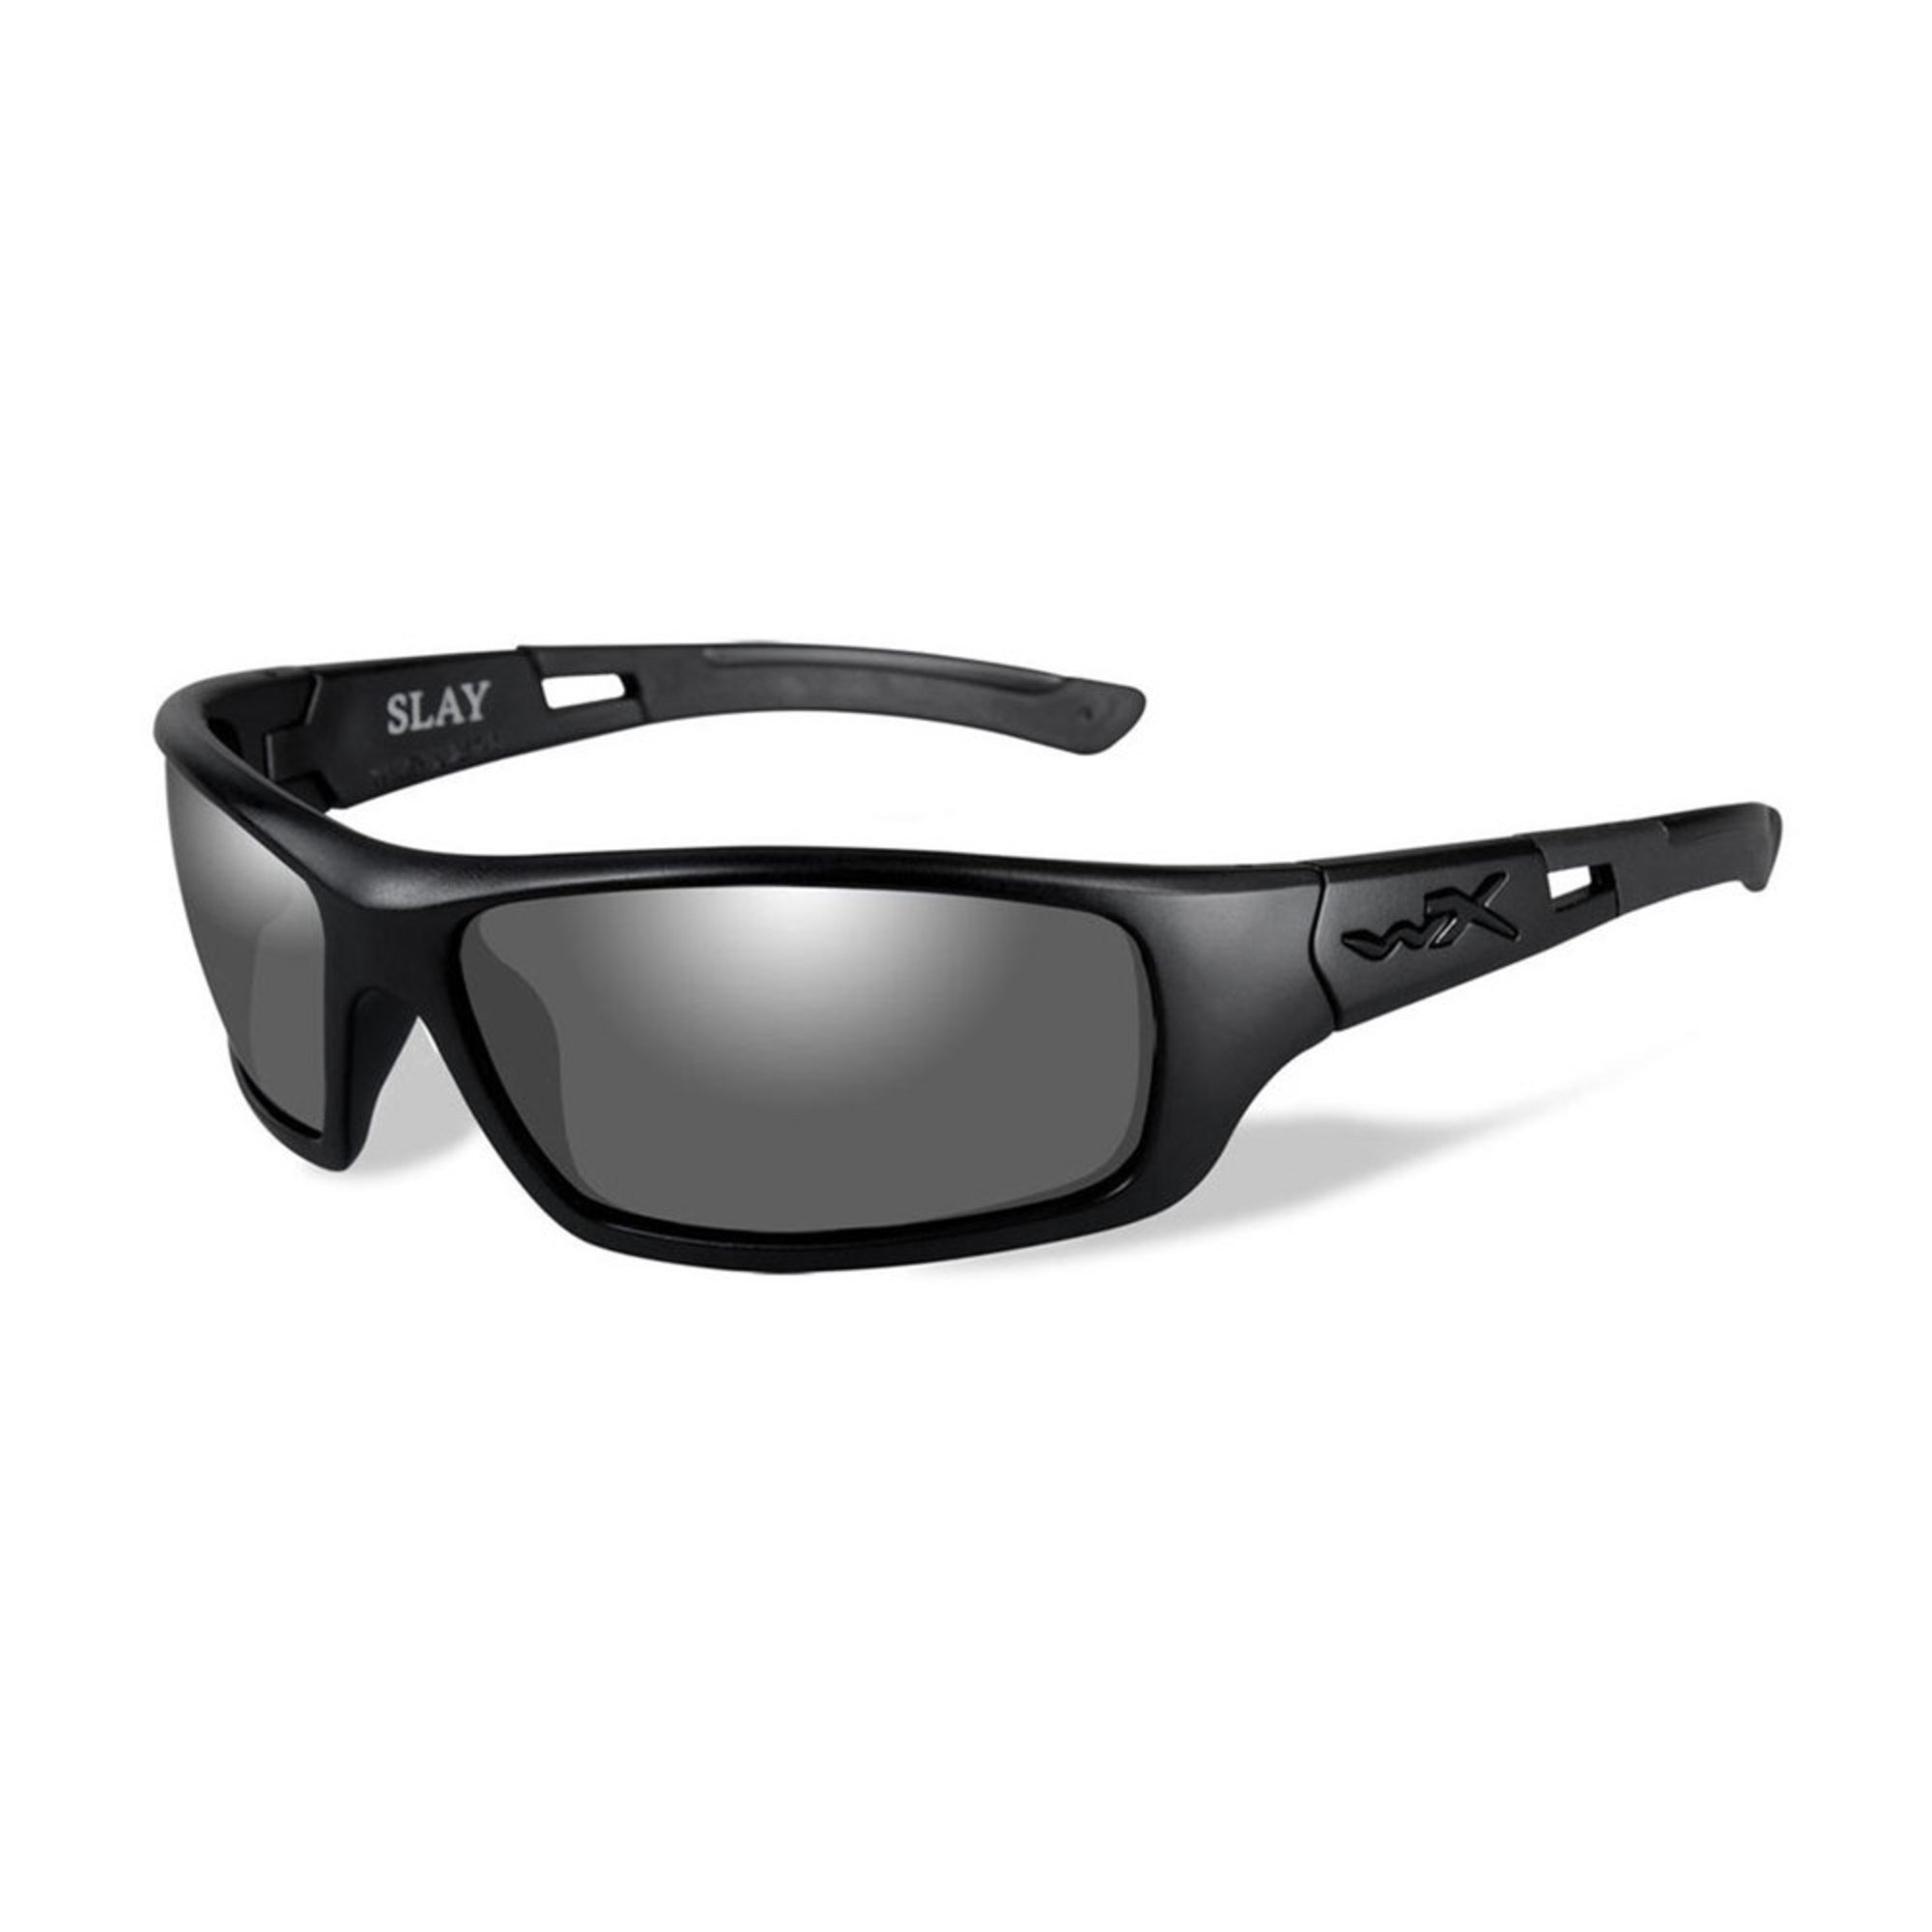 6061bf9c5d1 Wiley X. Wiley X Men s WX Slay OPS Sunglasses